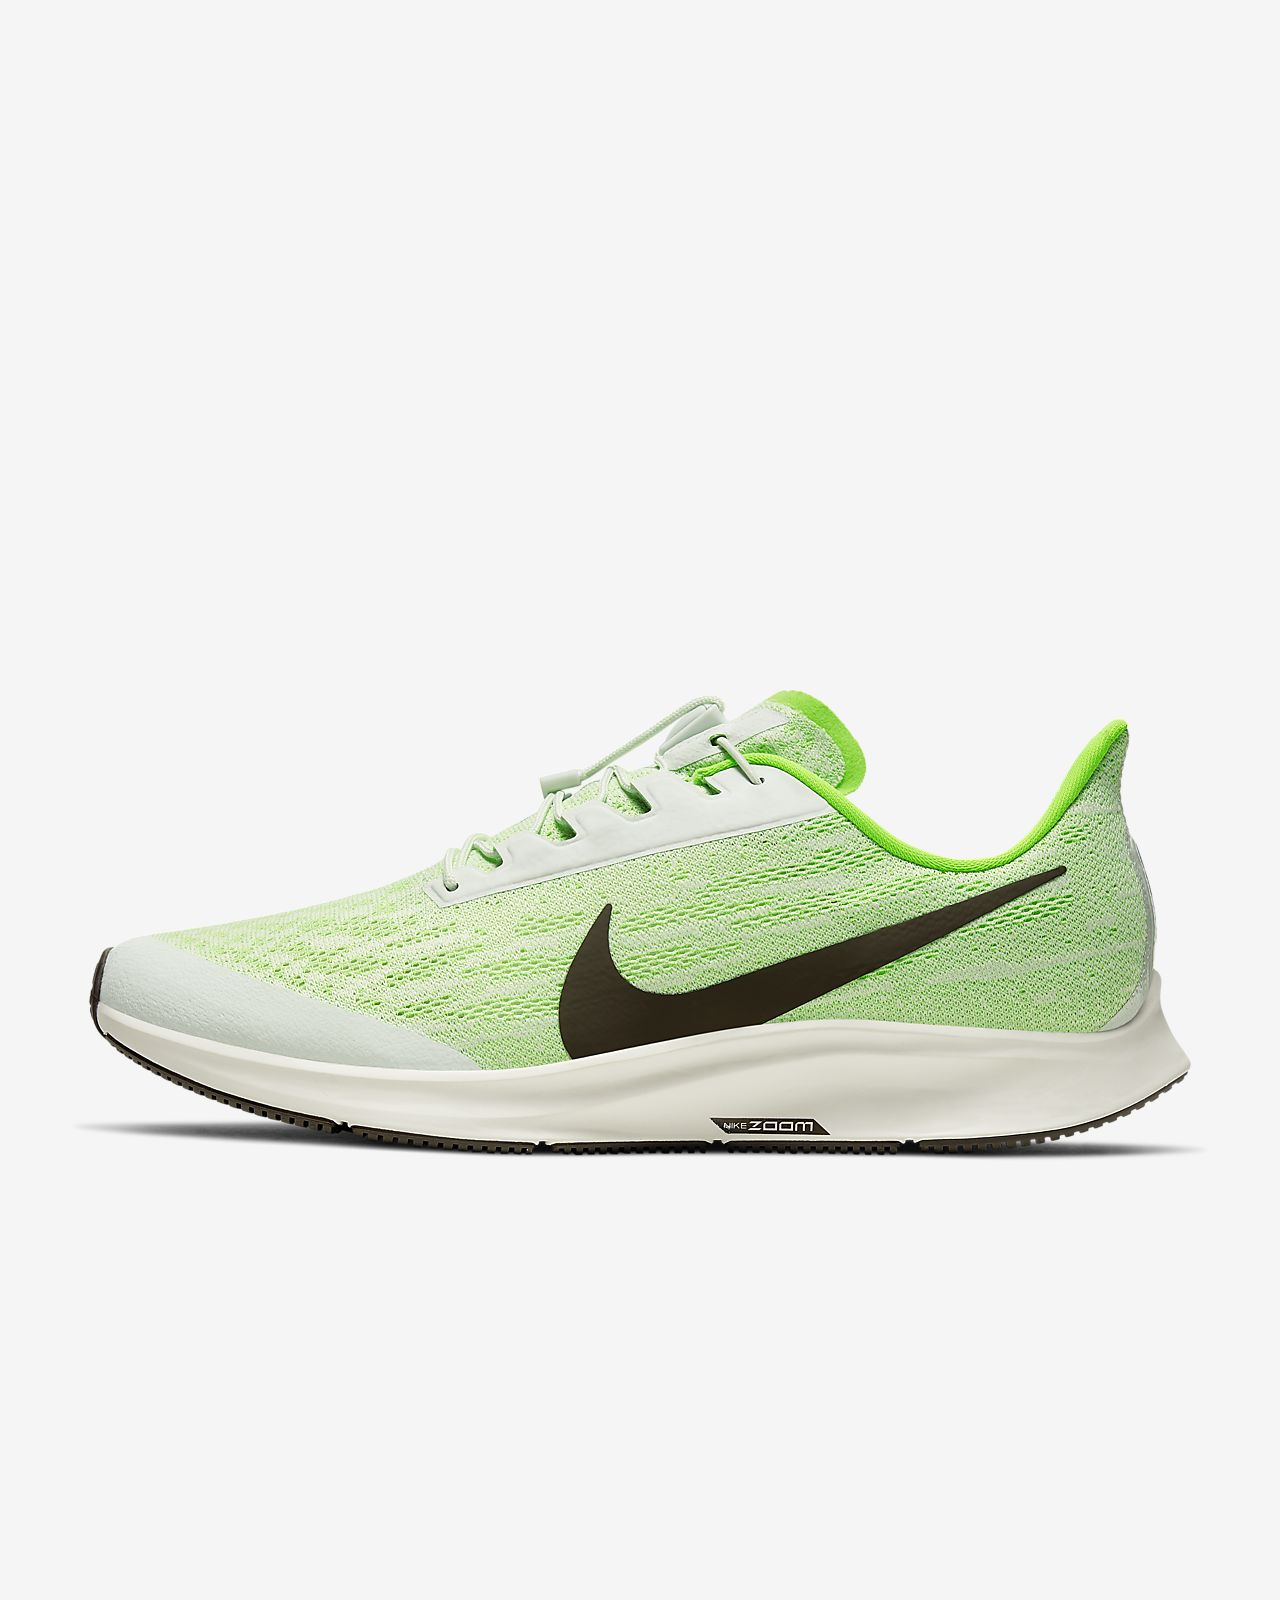 Nike Air Zoom Pegasus 36 FlyEase Men's Running Shoe